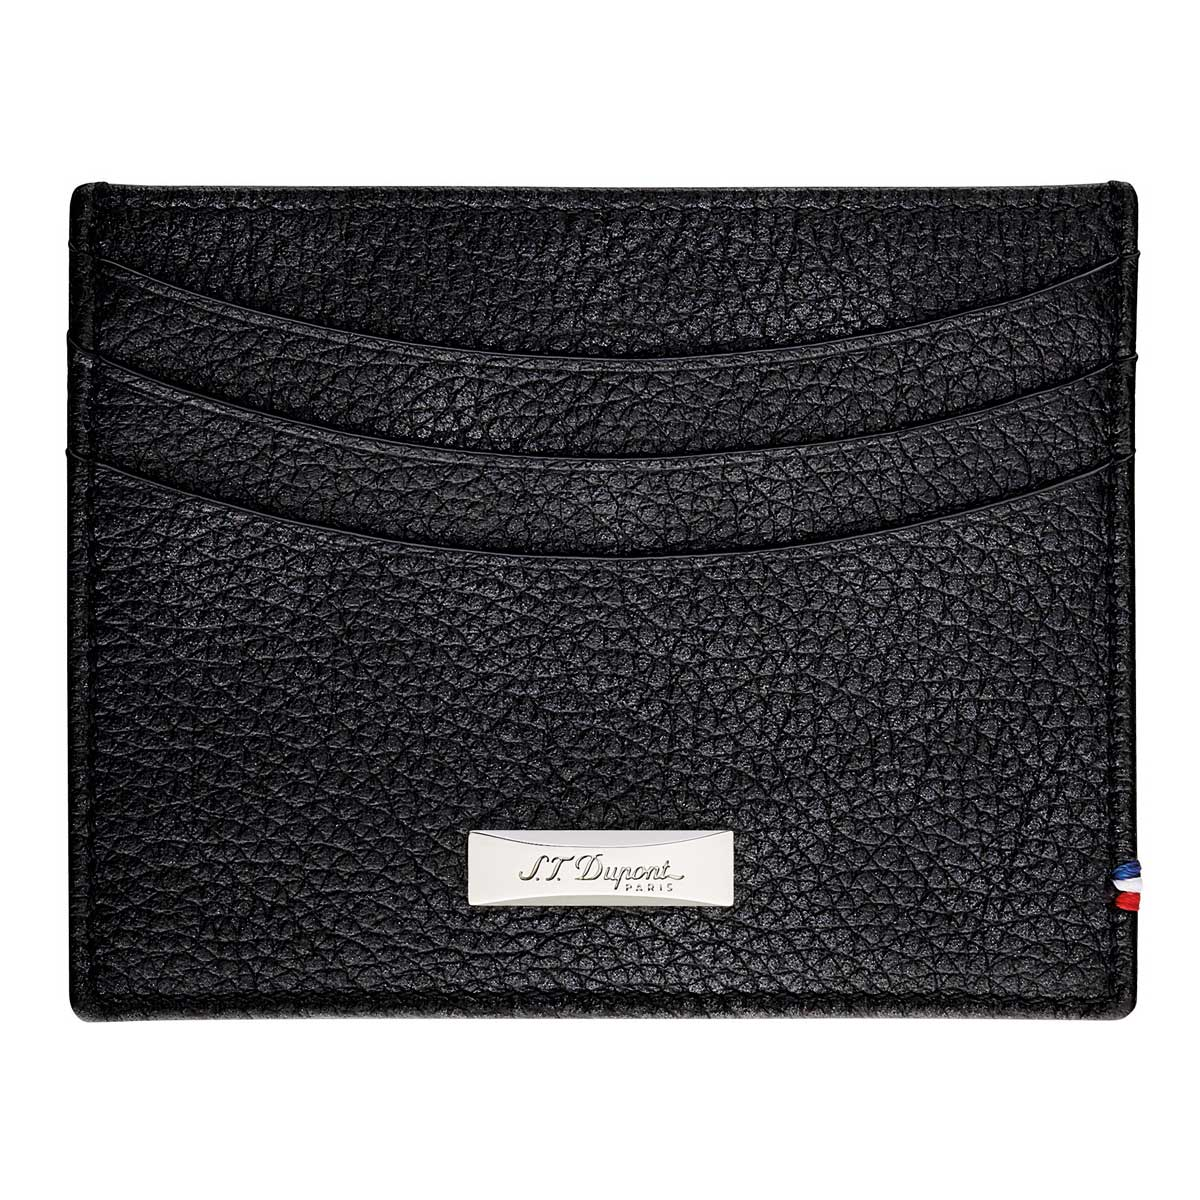 87f15f7679 ST Dupont Soft Diamond Grained Black Leather Men's RFID Credit Card Holder  Wallet